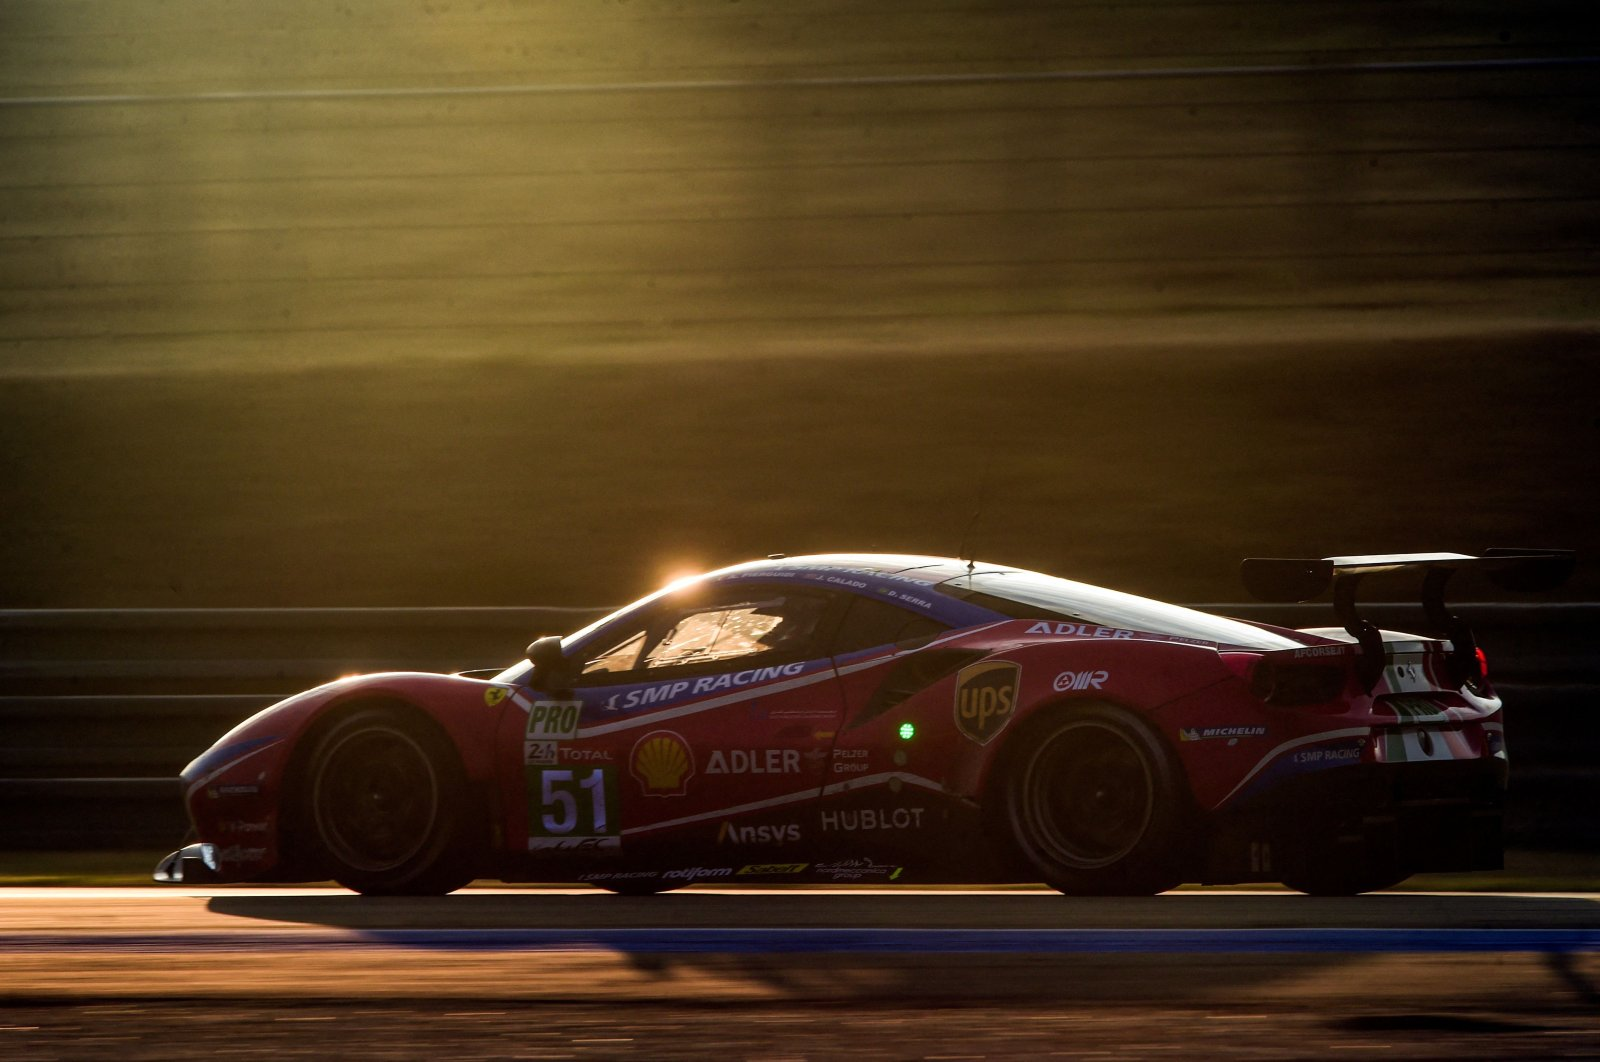 Italian driver Alessandro Pier Guidi competes with his Ferrari 488 GTE EVO during the 88th edition of the Le Mans 24 Hours endurance race, at Le Mans, northwestern France, on Sept. 20, 2020. (AFP Photo)